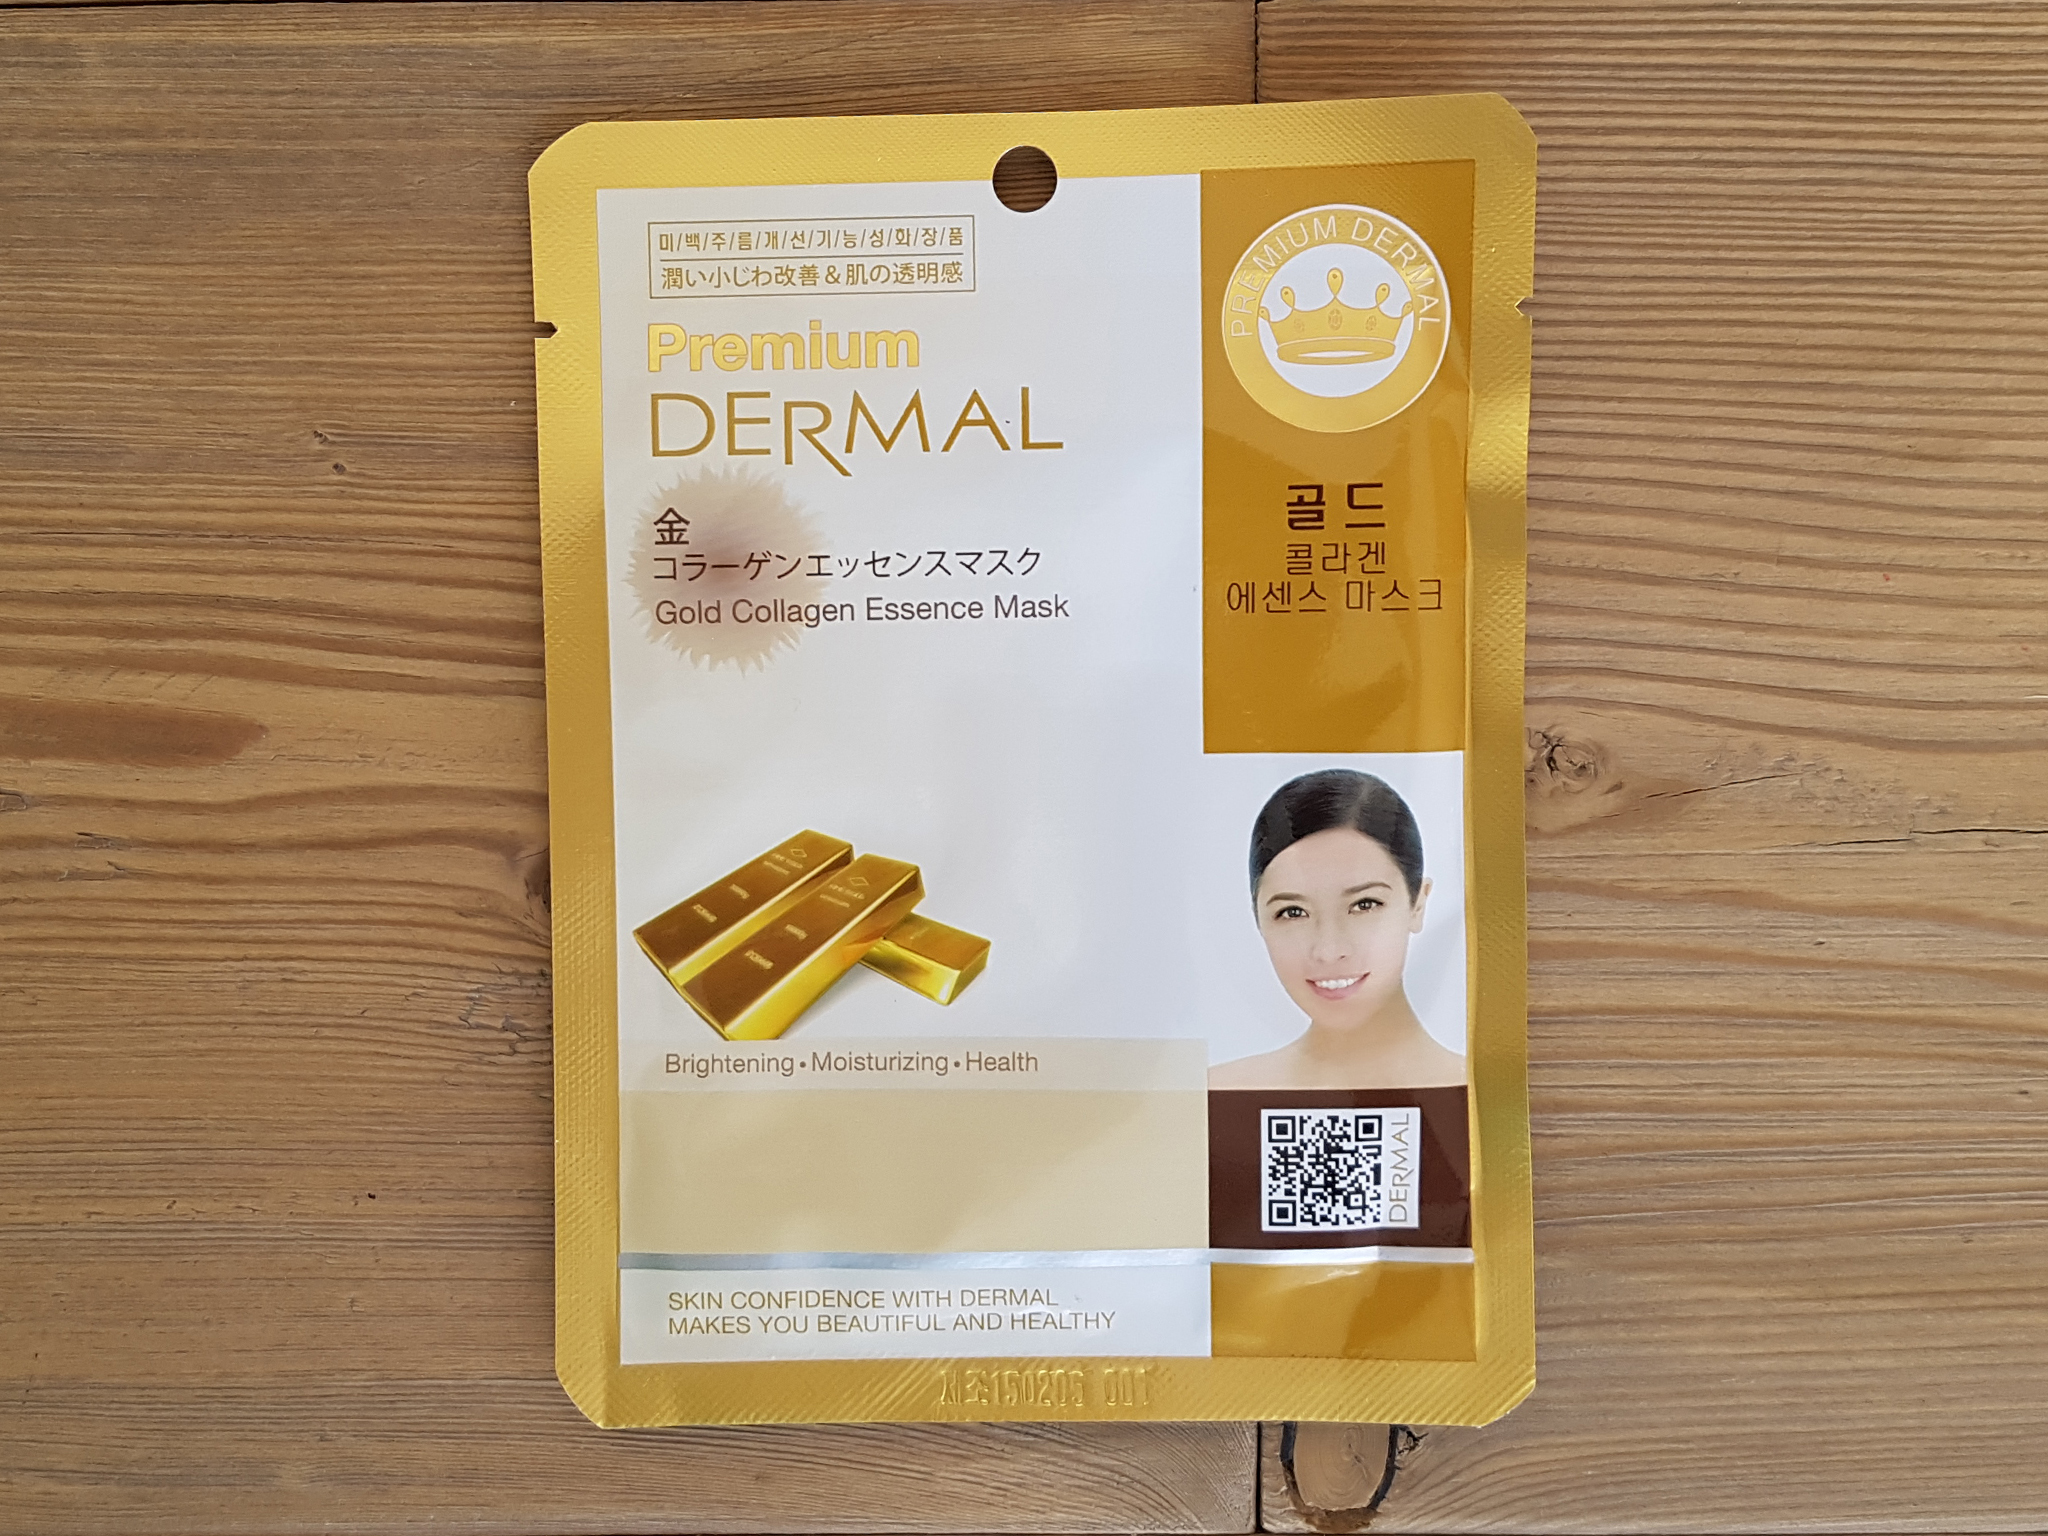 Gold Collagen Essence Mask